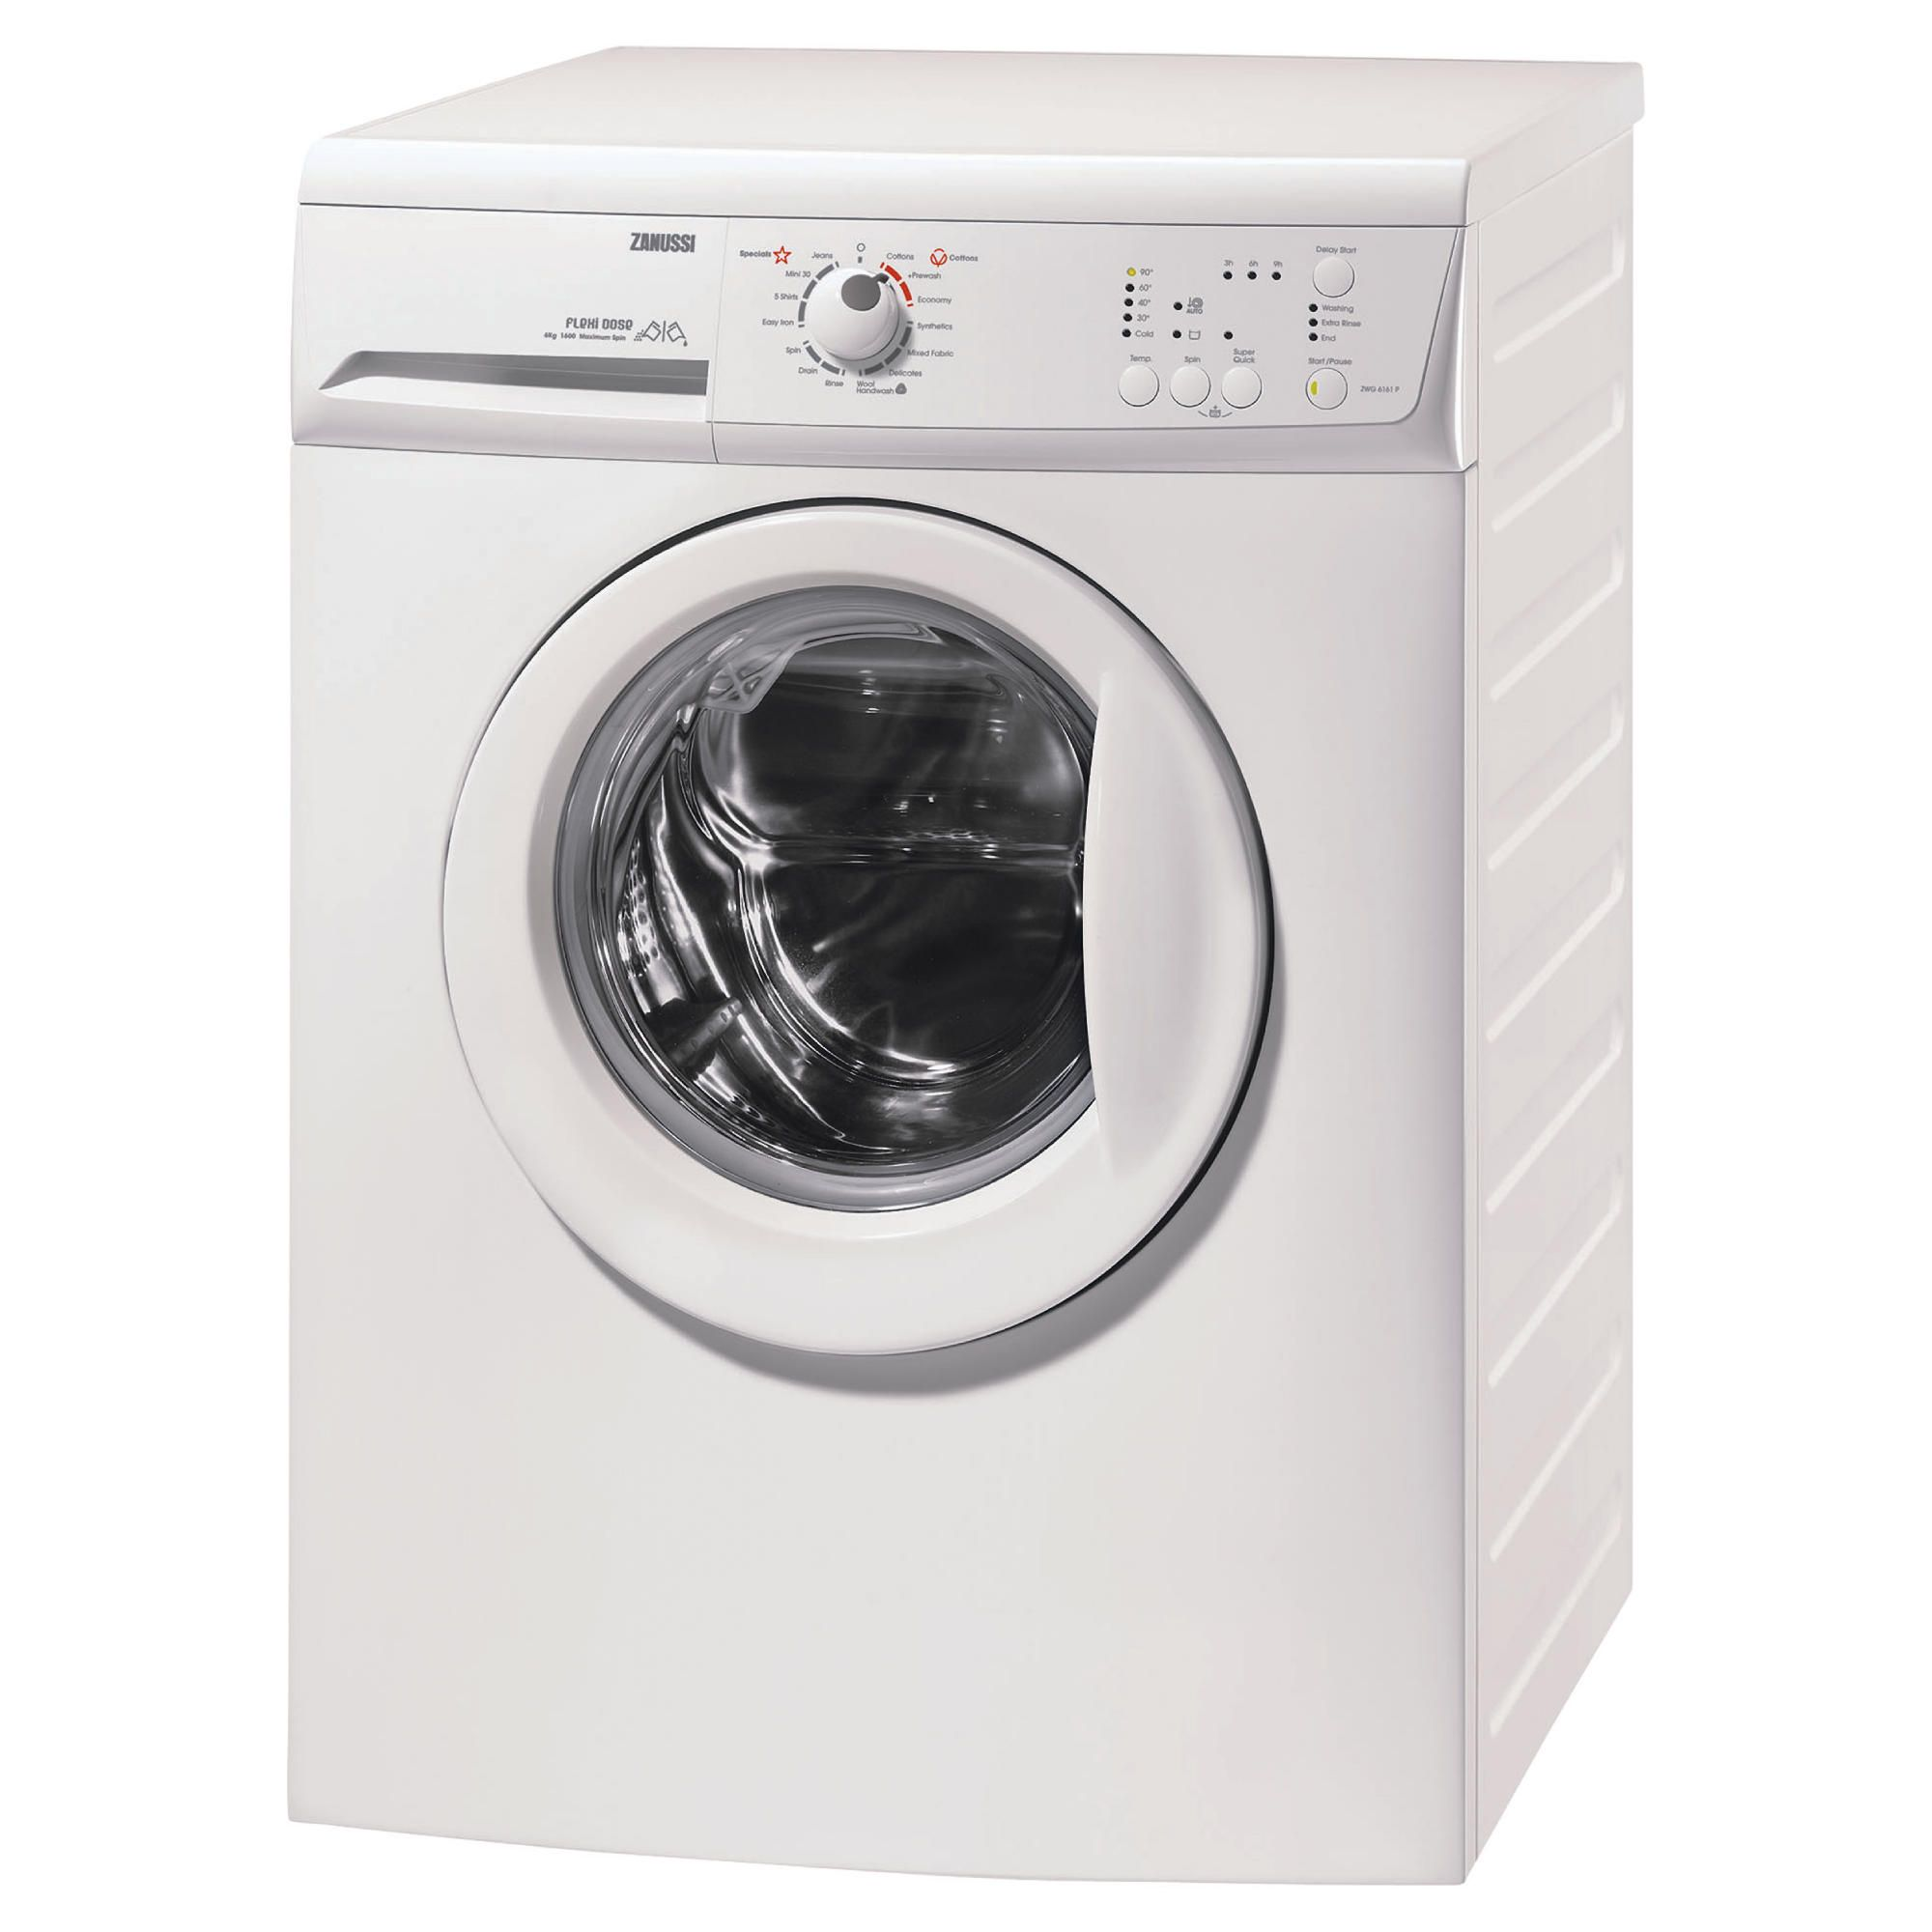 Zanussi zwg6161p washing machine washing machine reviews zanussi zwg6161p washing machine buycottarizona Choice Image